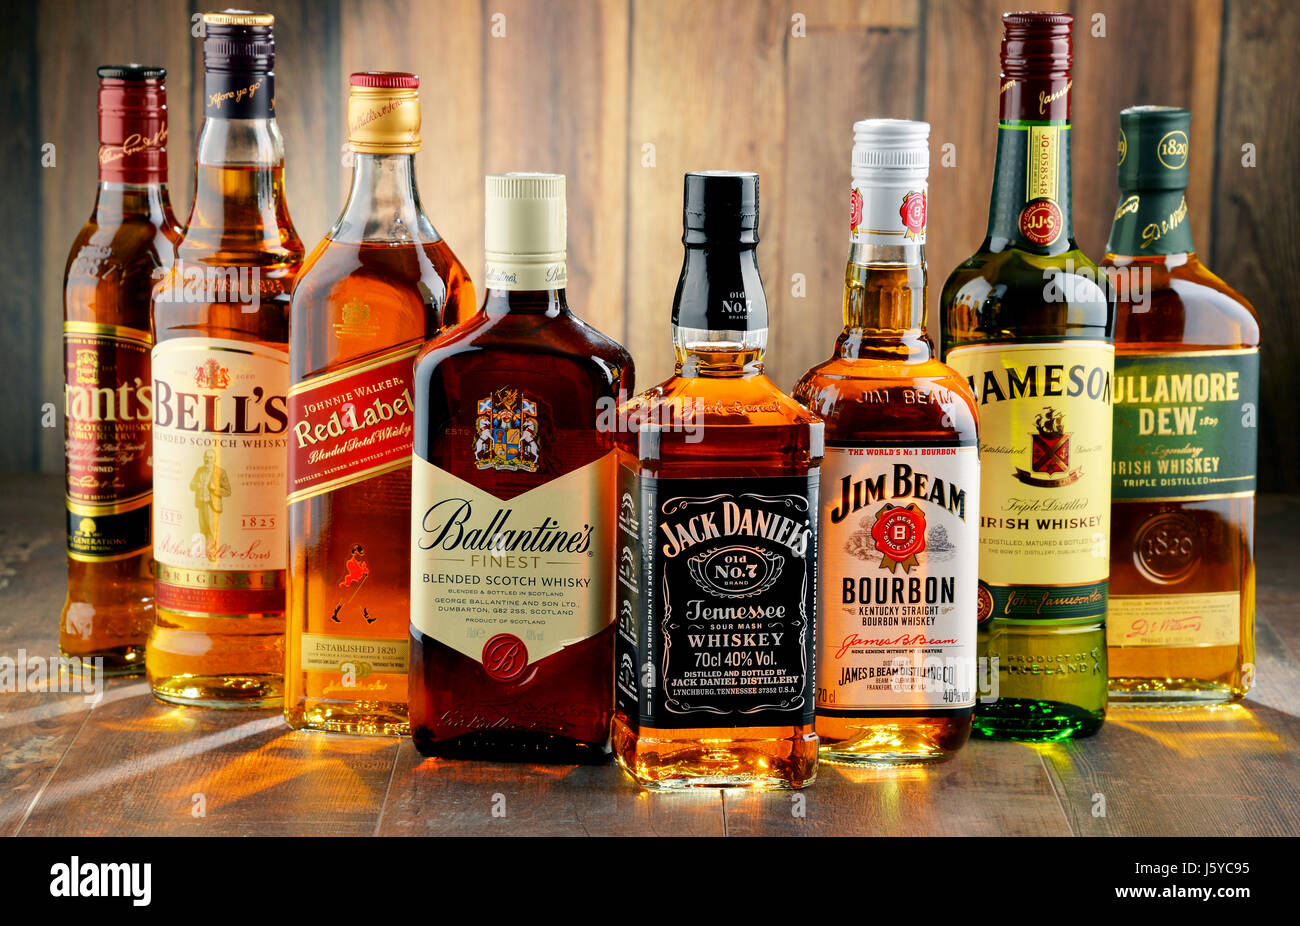 http://c7.alamy.com/comp/J5YC95/poznan-poland-may-17-2016-whiskey-is-the-most-popular-liquor-in-the-J5YC95.jpg